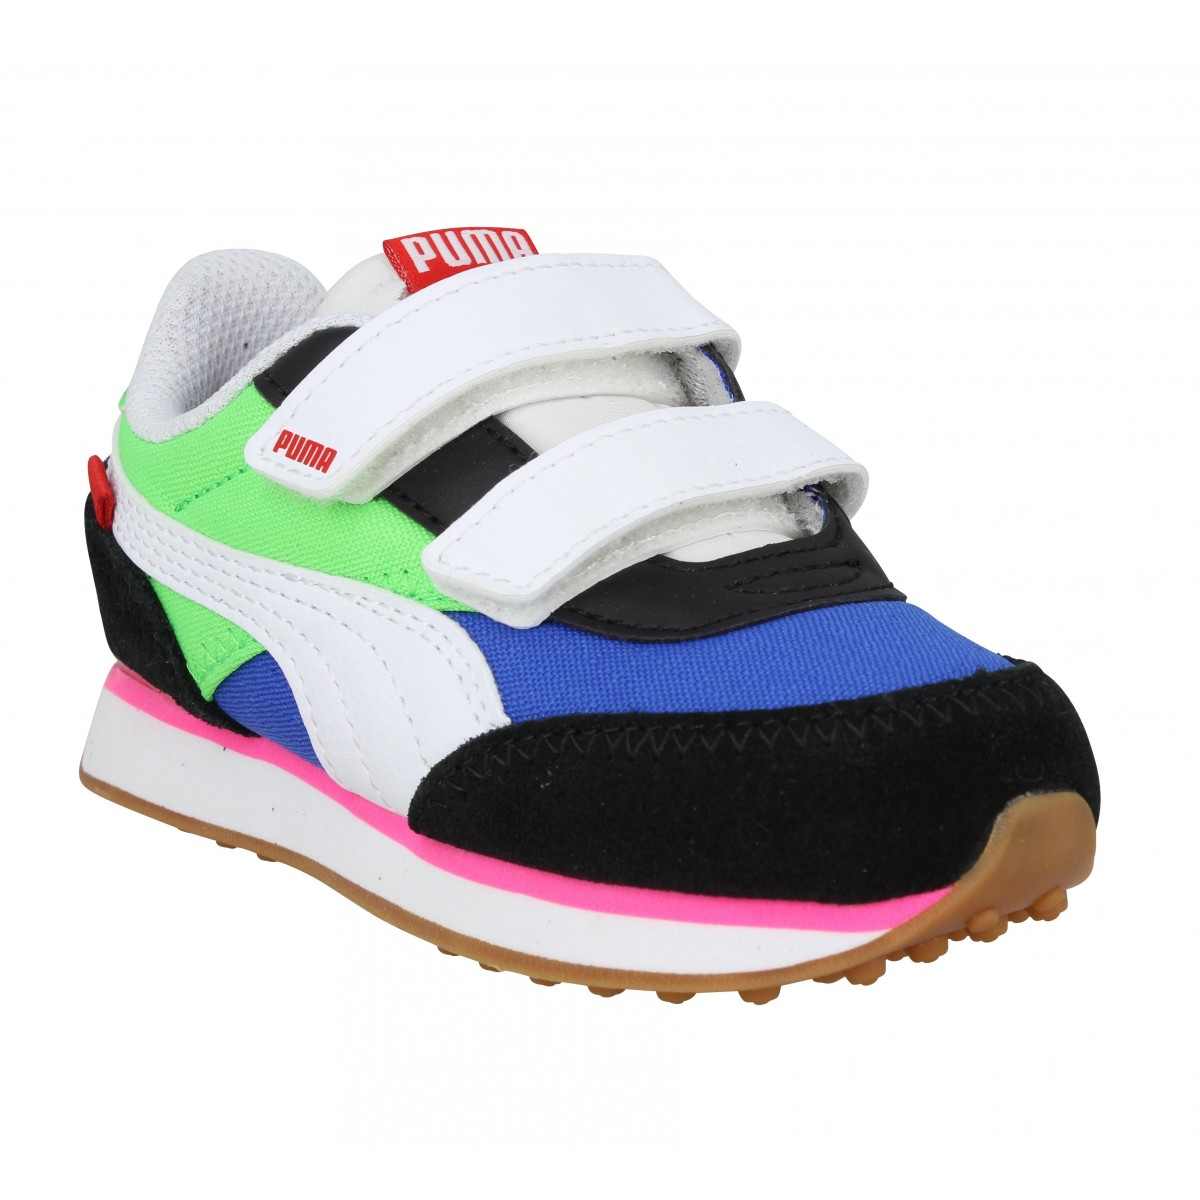 Baskets PUMA Future Rider Play On V velours toile Enfant Bleu Vert